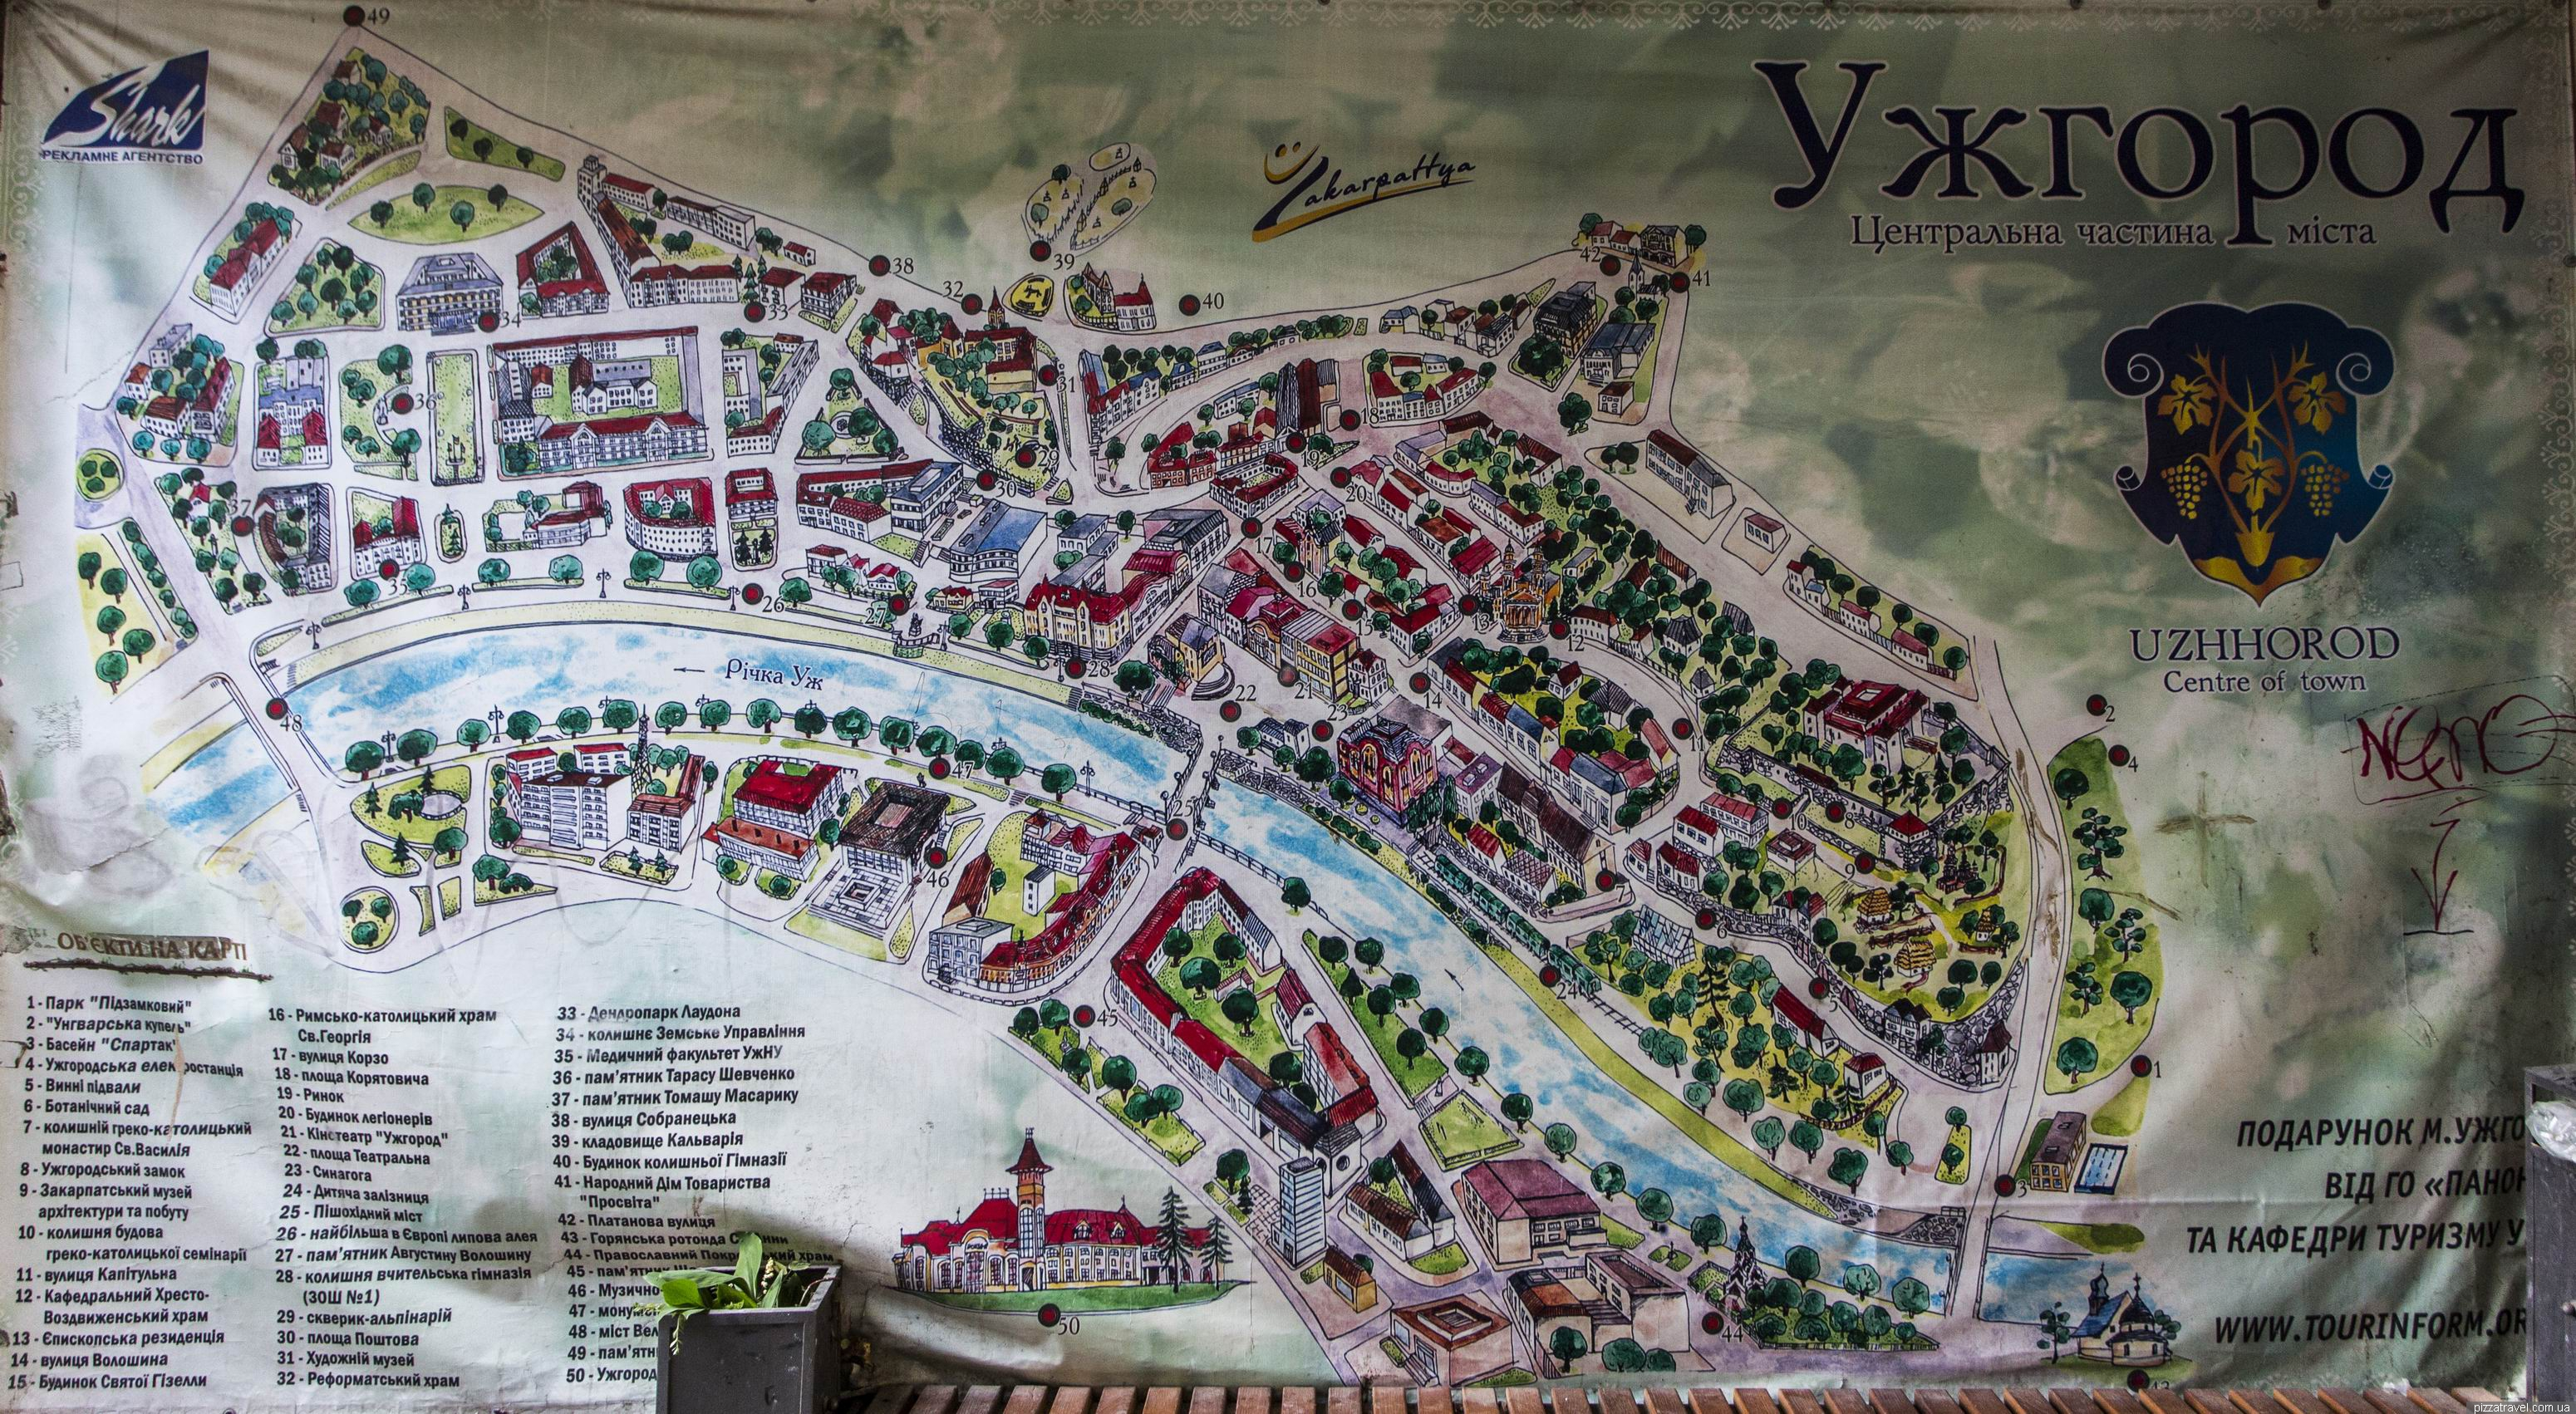 Uzhgorod Ukraine Blog About Interesting Places - Uzhhorod map